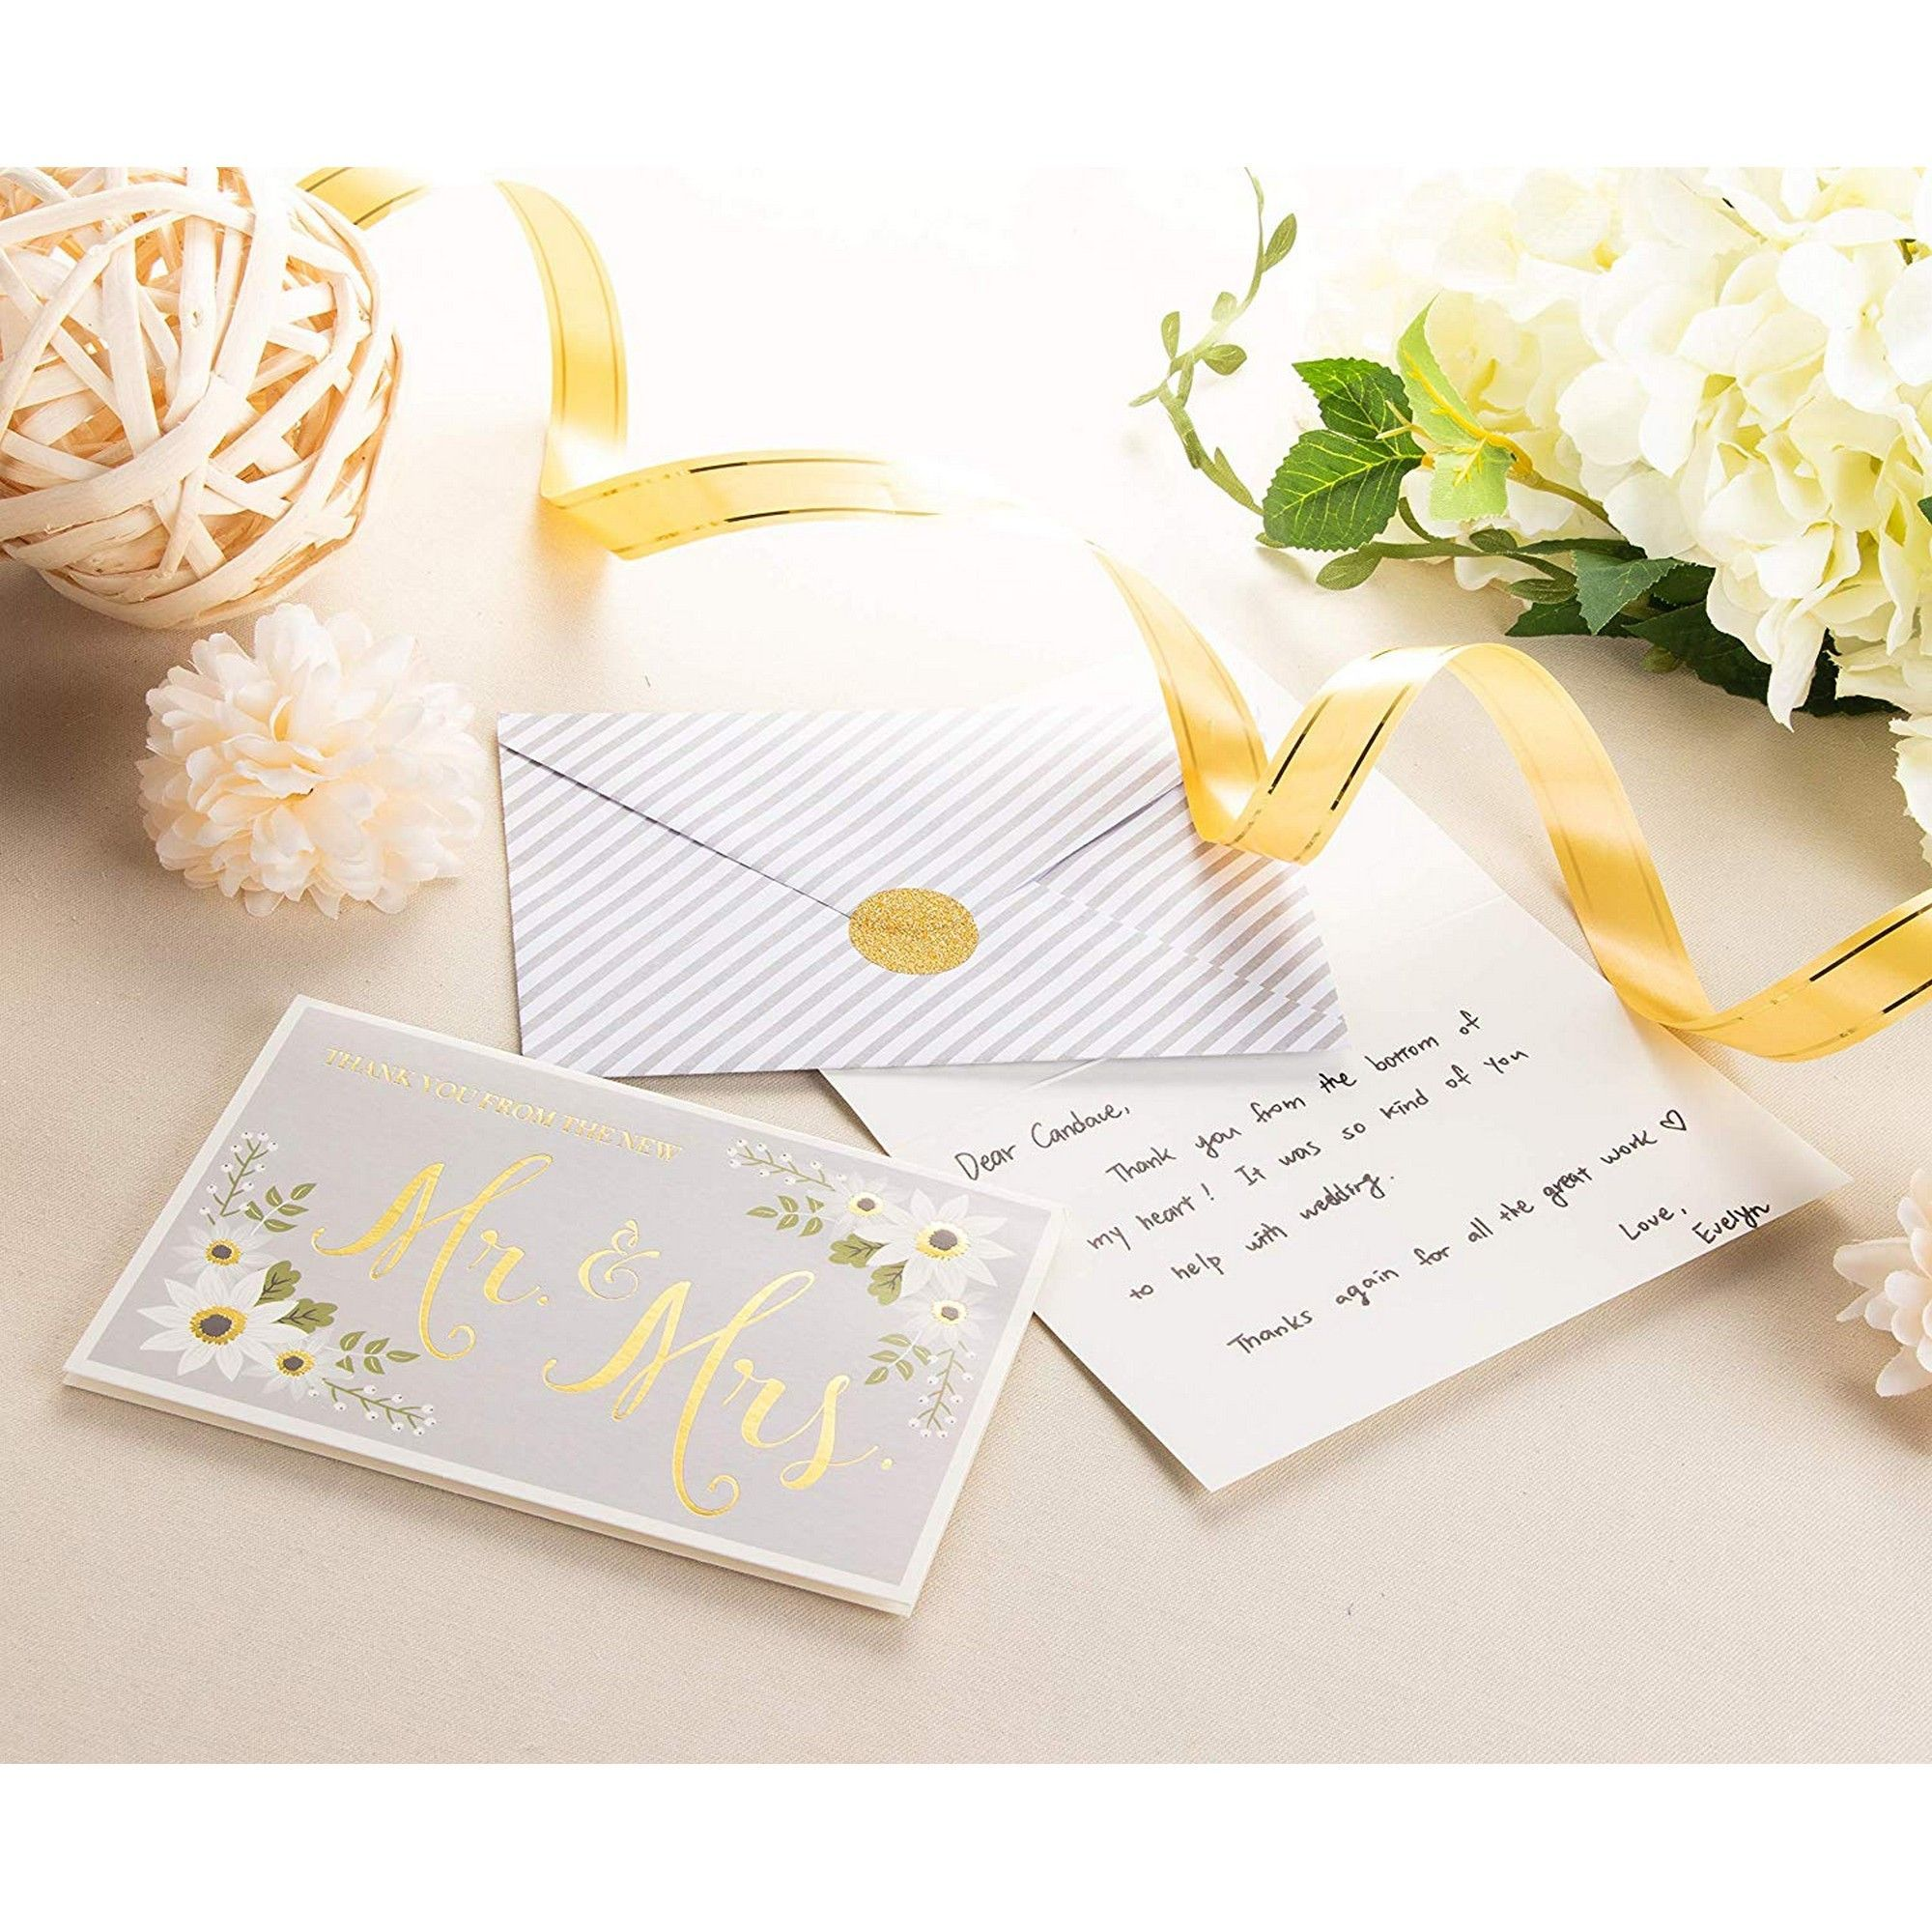 Gold Foil and Flower Design 4 x 6 Inches 48-Pack Thank You from The New Mr Greeting Card Bulk Thank You Note Cards and Envelopes Stationery Set Wedding Thank You Cards and Mrs